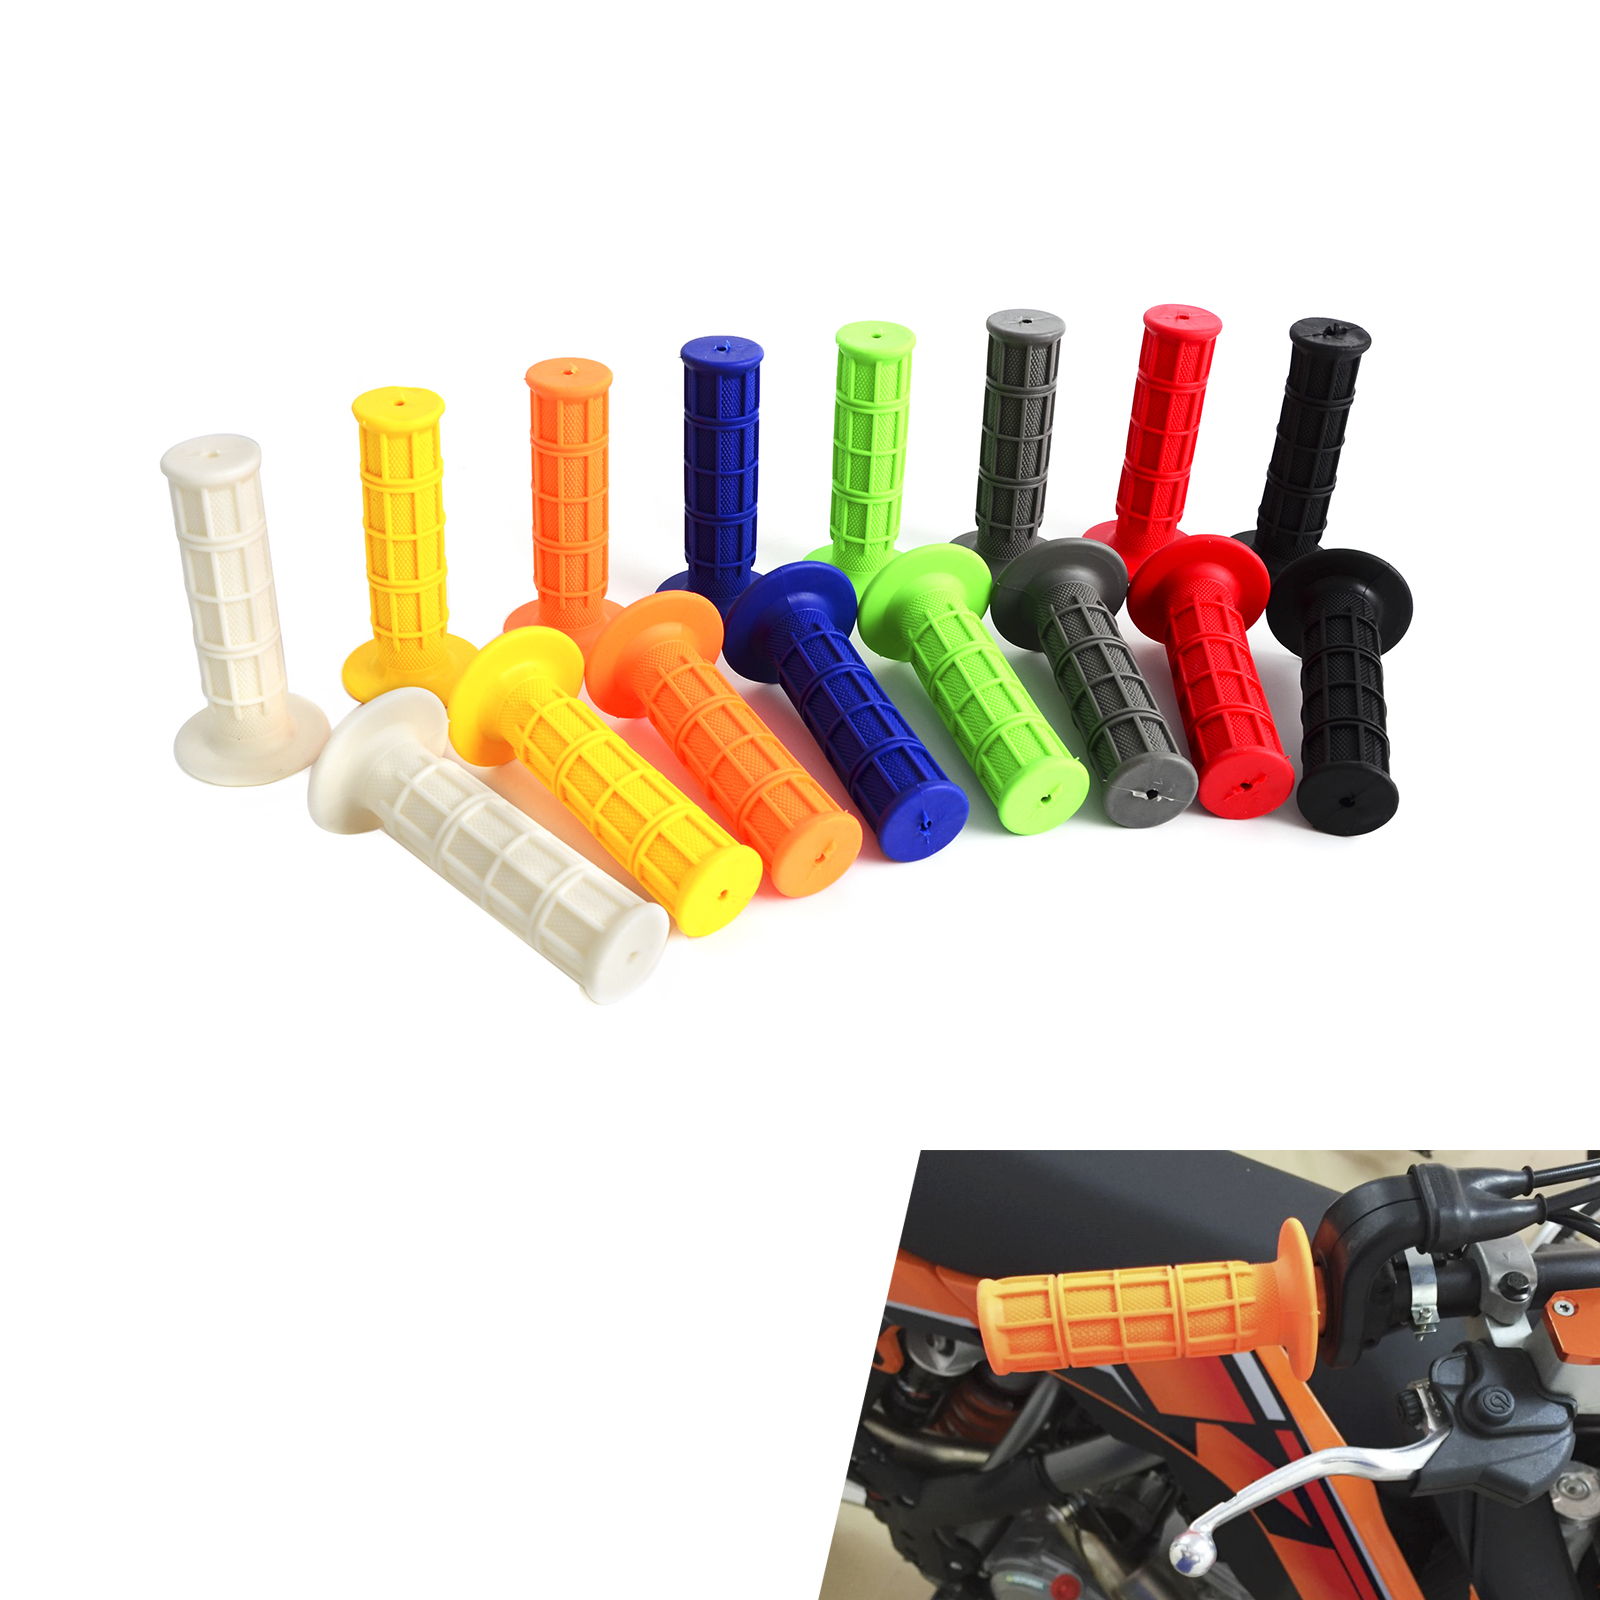 Universal Soft Rubber 22mm 7/8 Hand Grips For MX Pit Dirt Bike Motorcycle